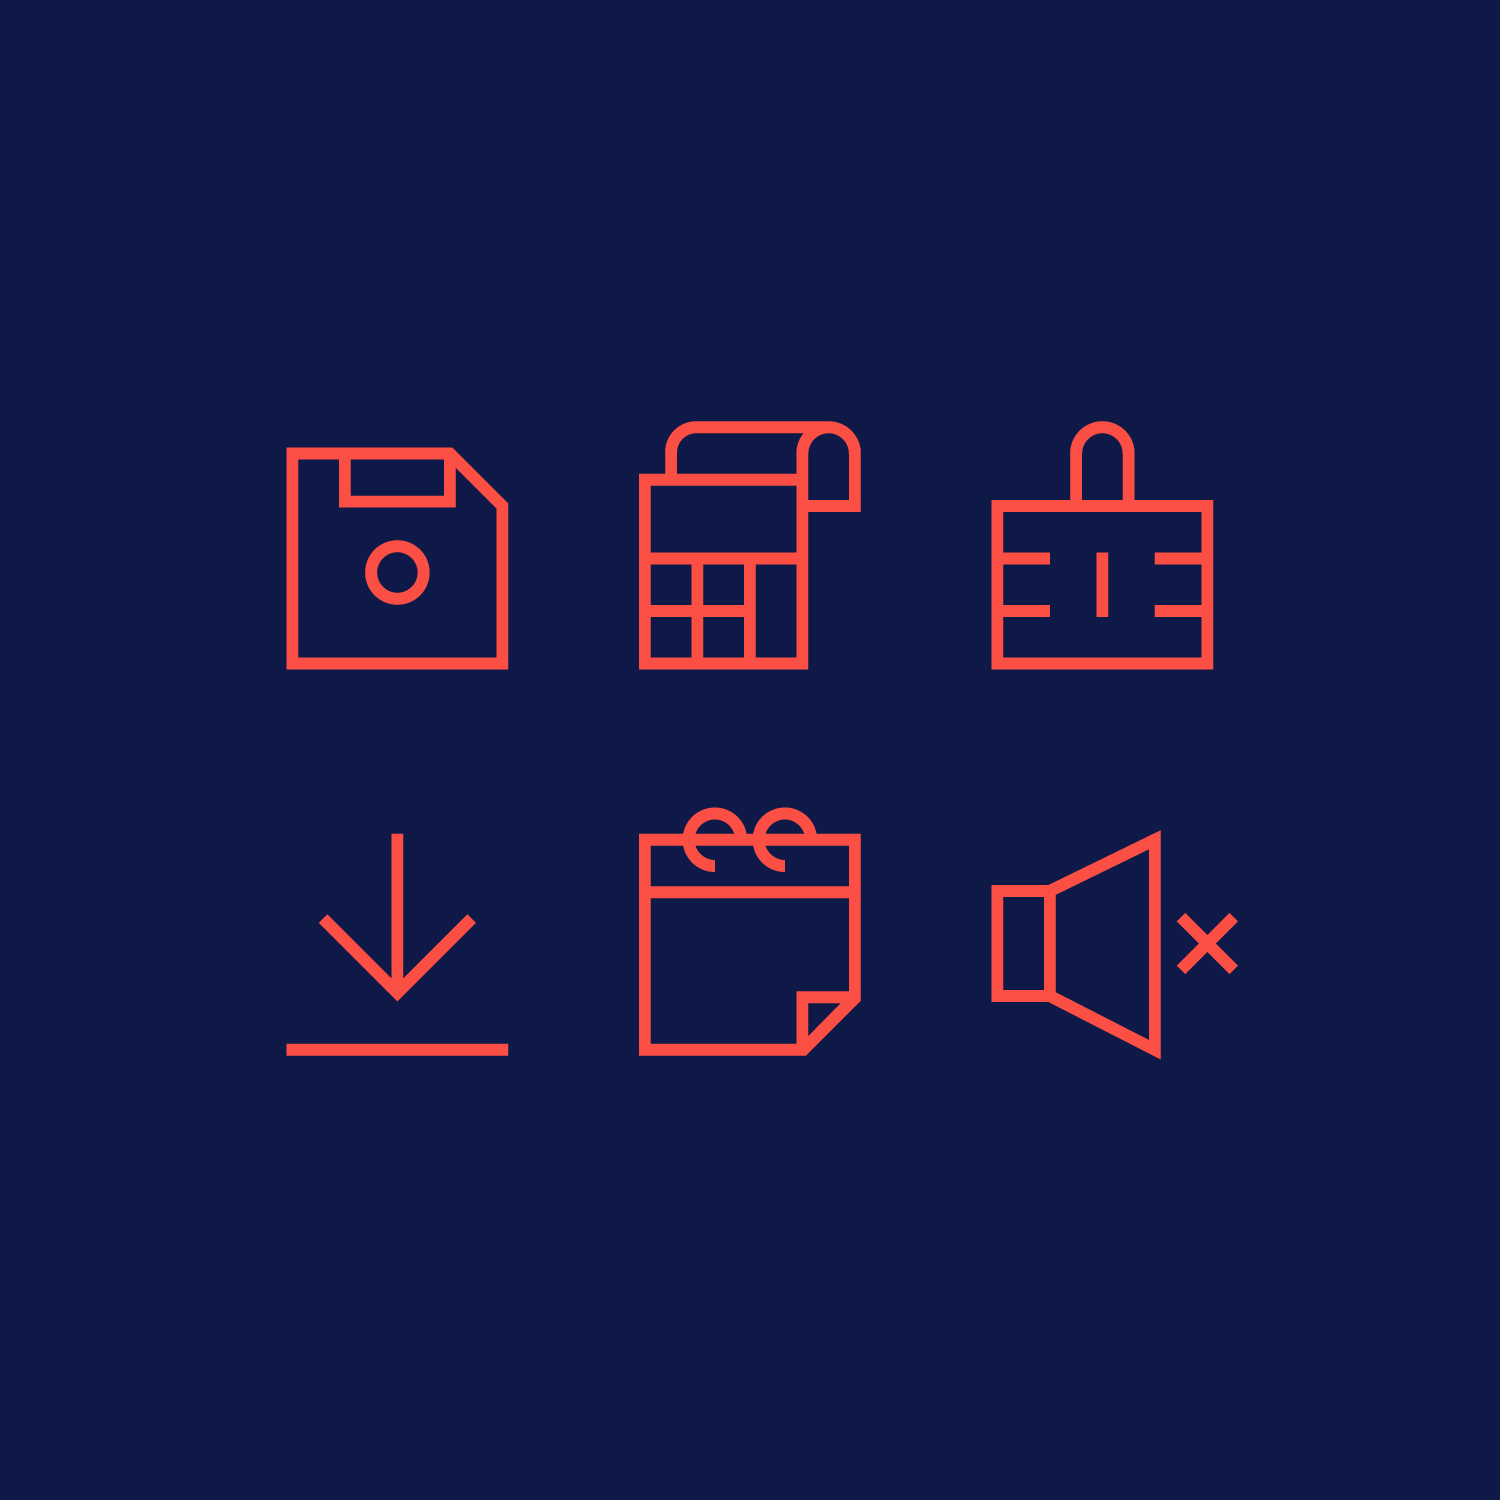 OnMobile icon system  A new icon system for OnMobile, a telco company with customers in more than 60 countries. We created around 200+ icons as a part of a bigger brand refresh